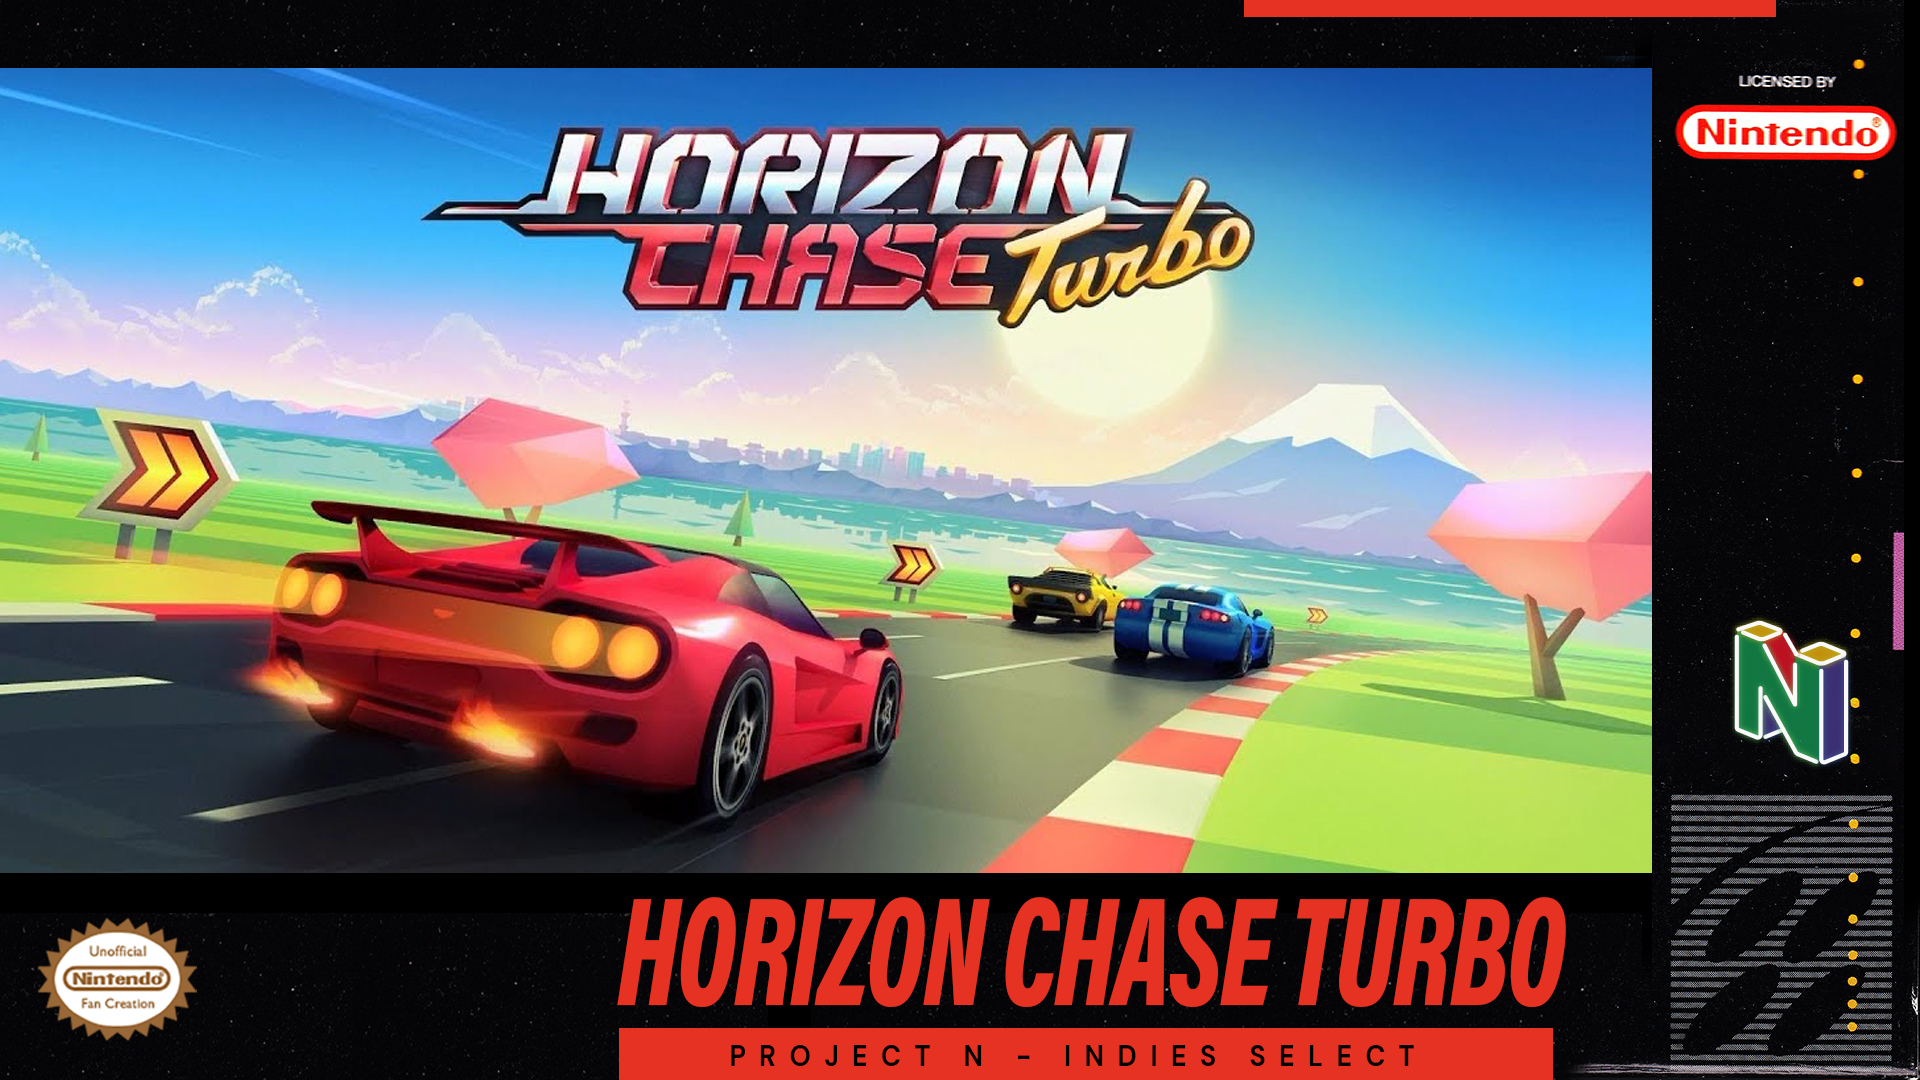 Project N Cast - Indies Select #1 - Horizon Chase Turbo